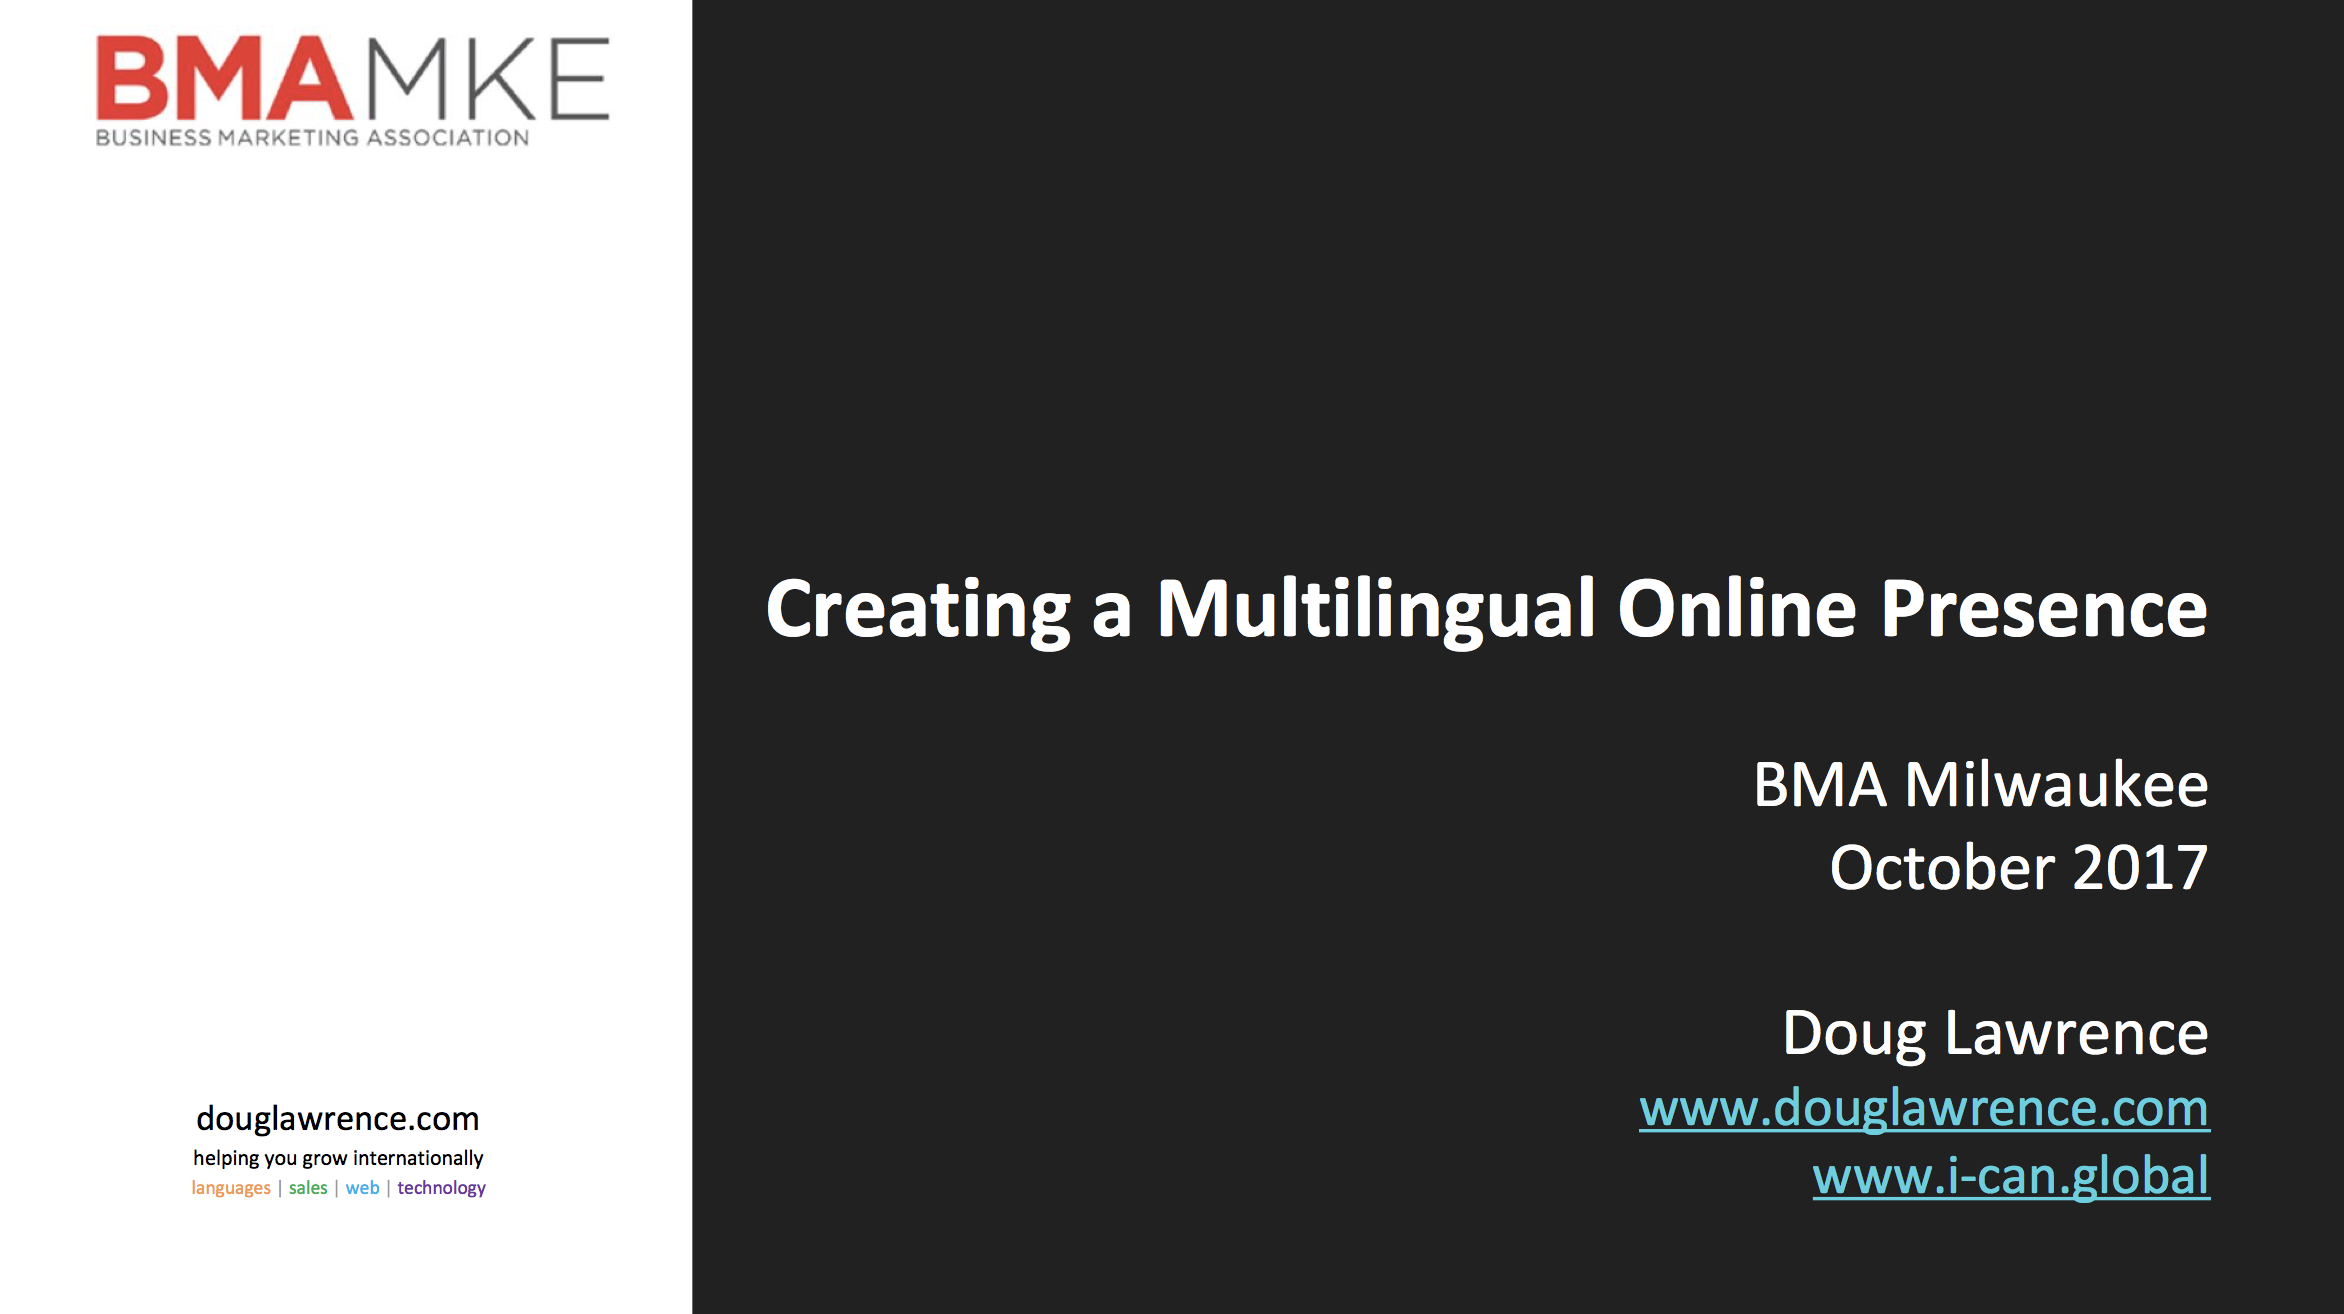 Creating a Multilingual Online Presence